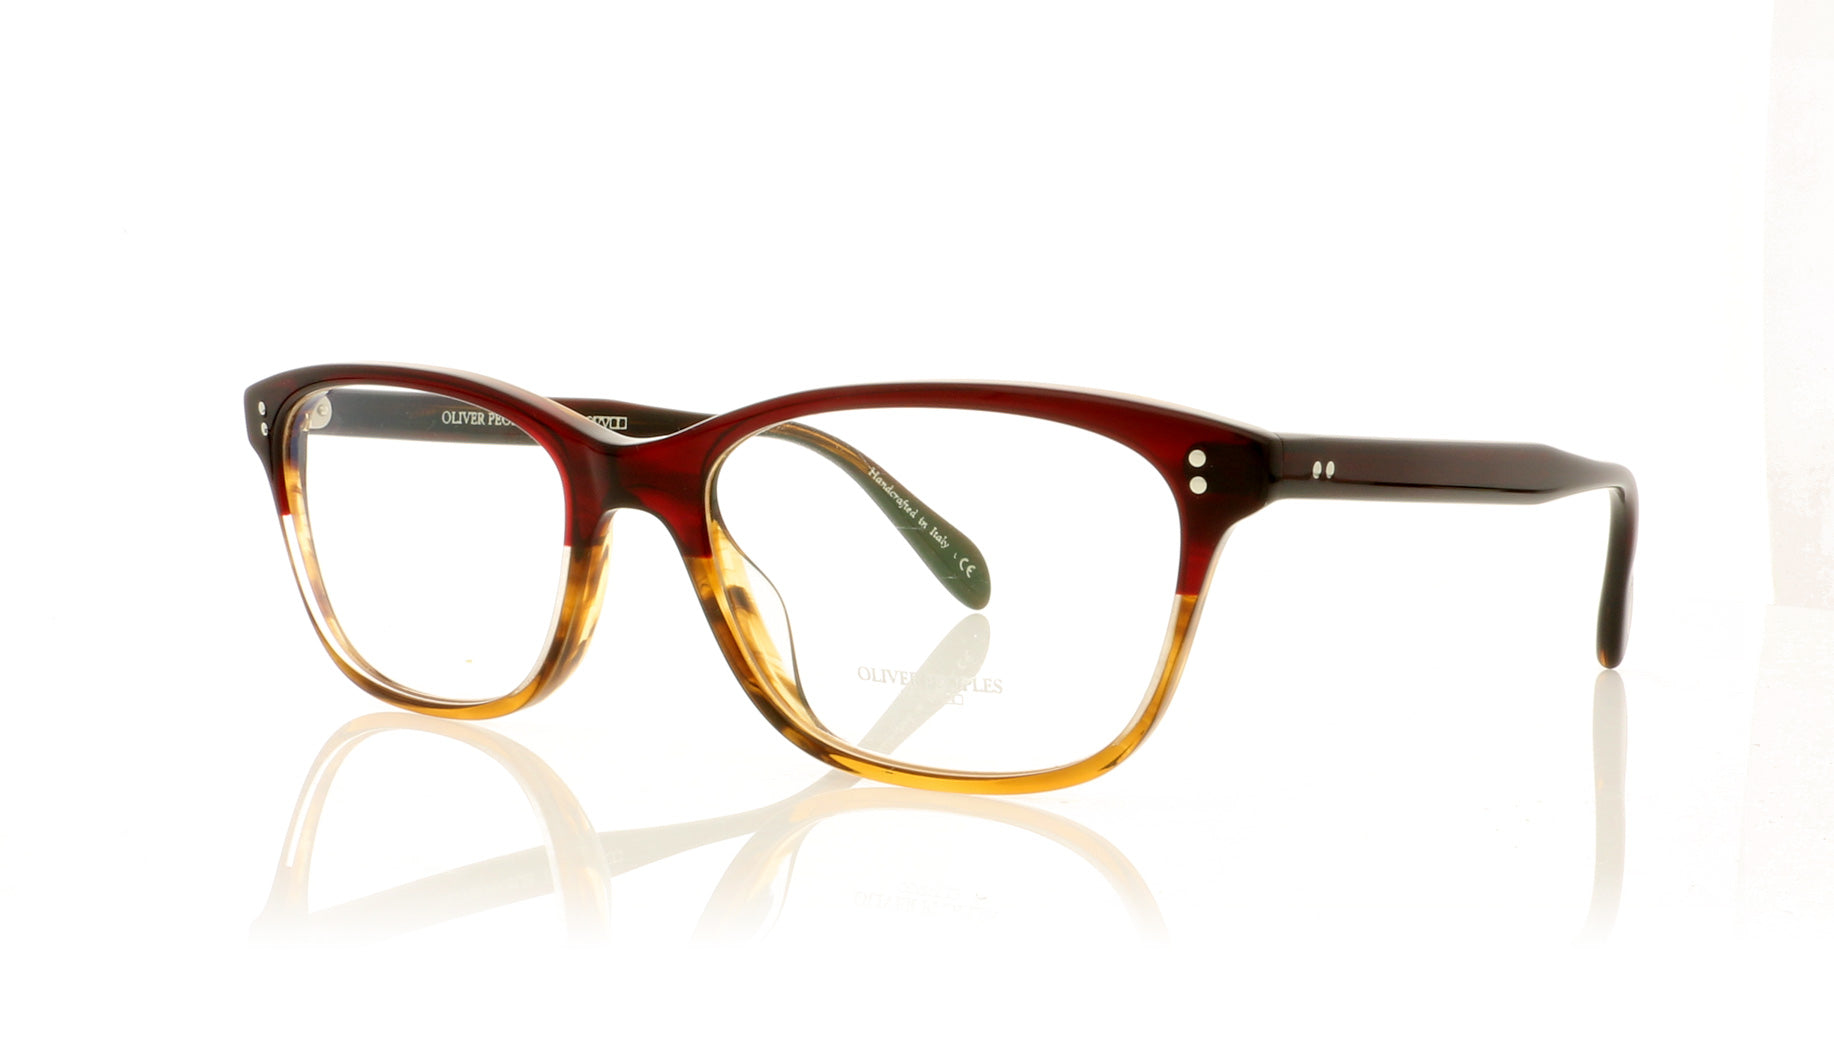 a745370971 Oliver Peoples Ashton OV5224 1224 Red Tortoise Gradient Glasses at OCO